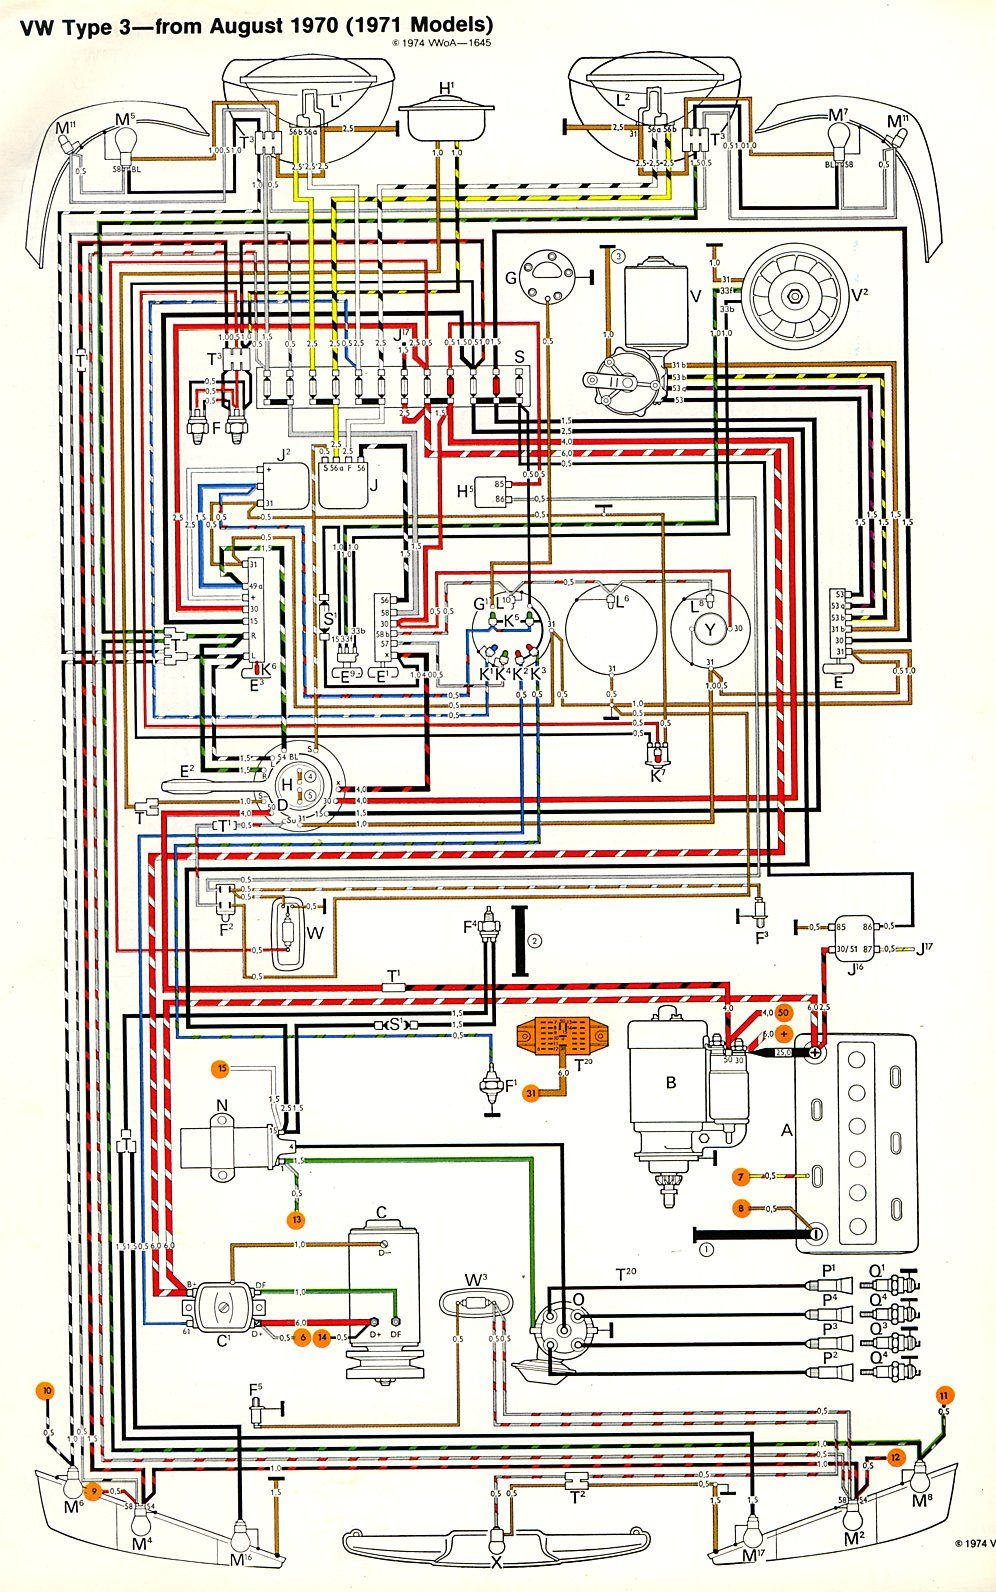 1971 Type Iii Wiring Diagram Vw Beetles Electrical Diagram Fuse Box